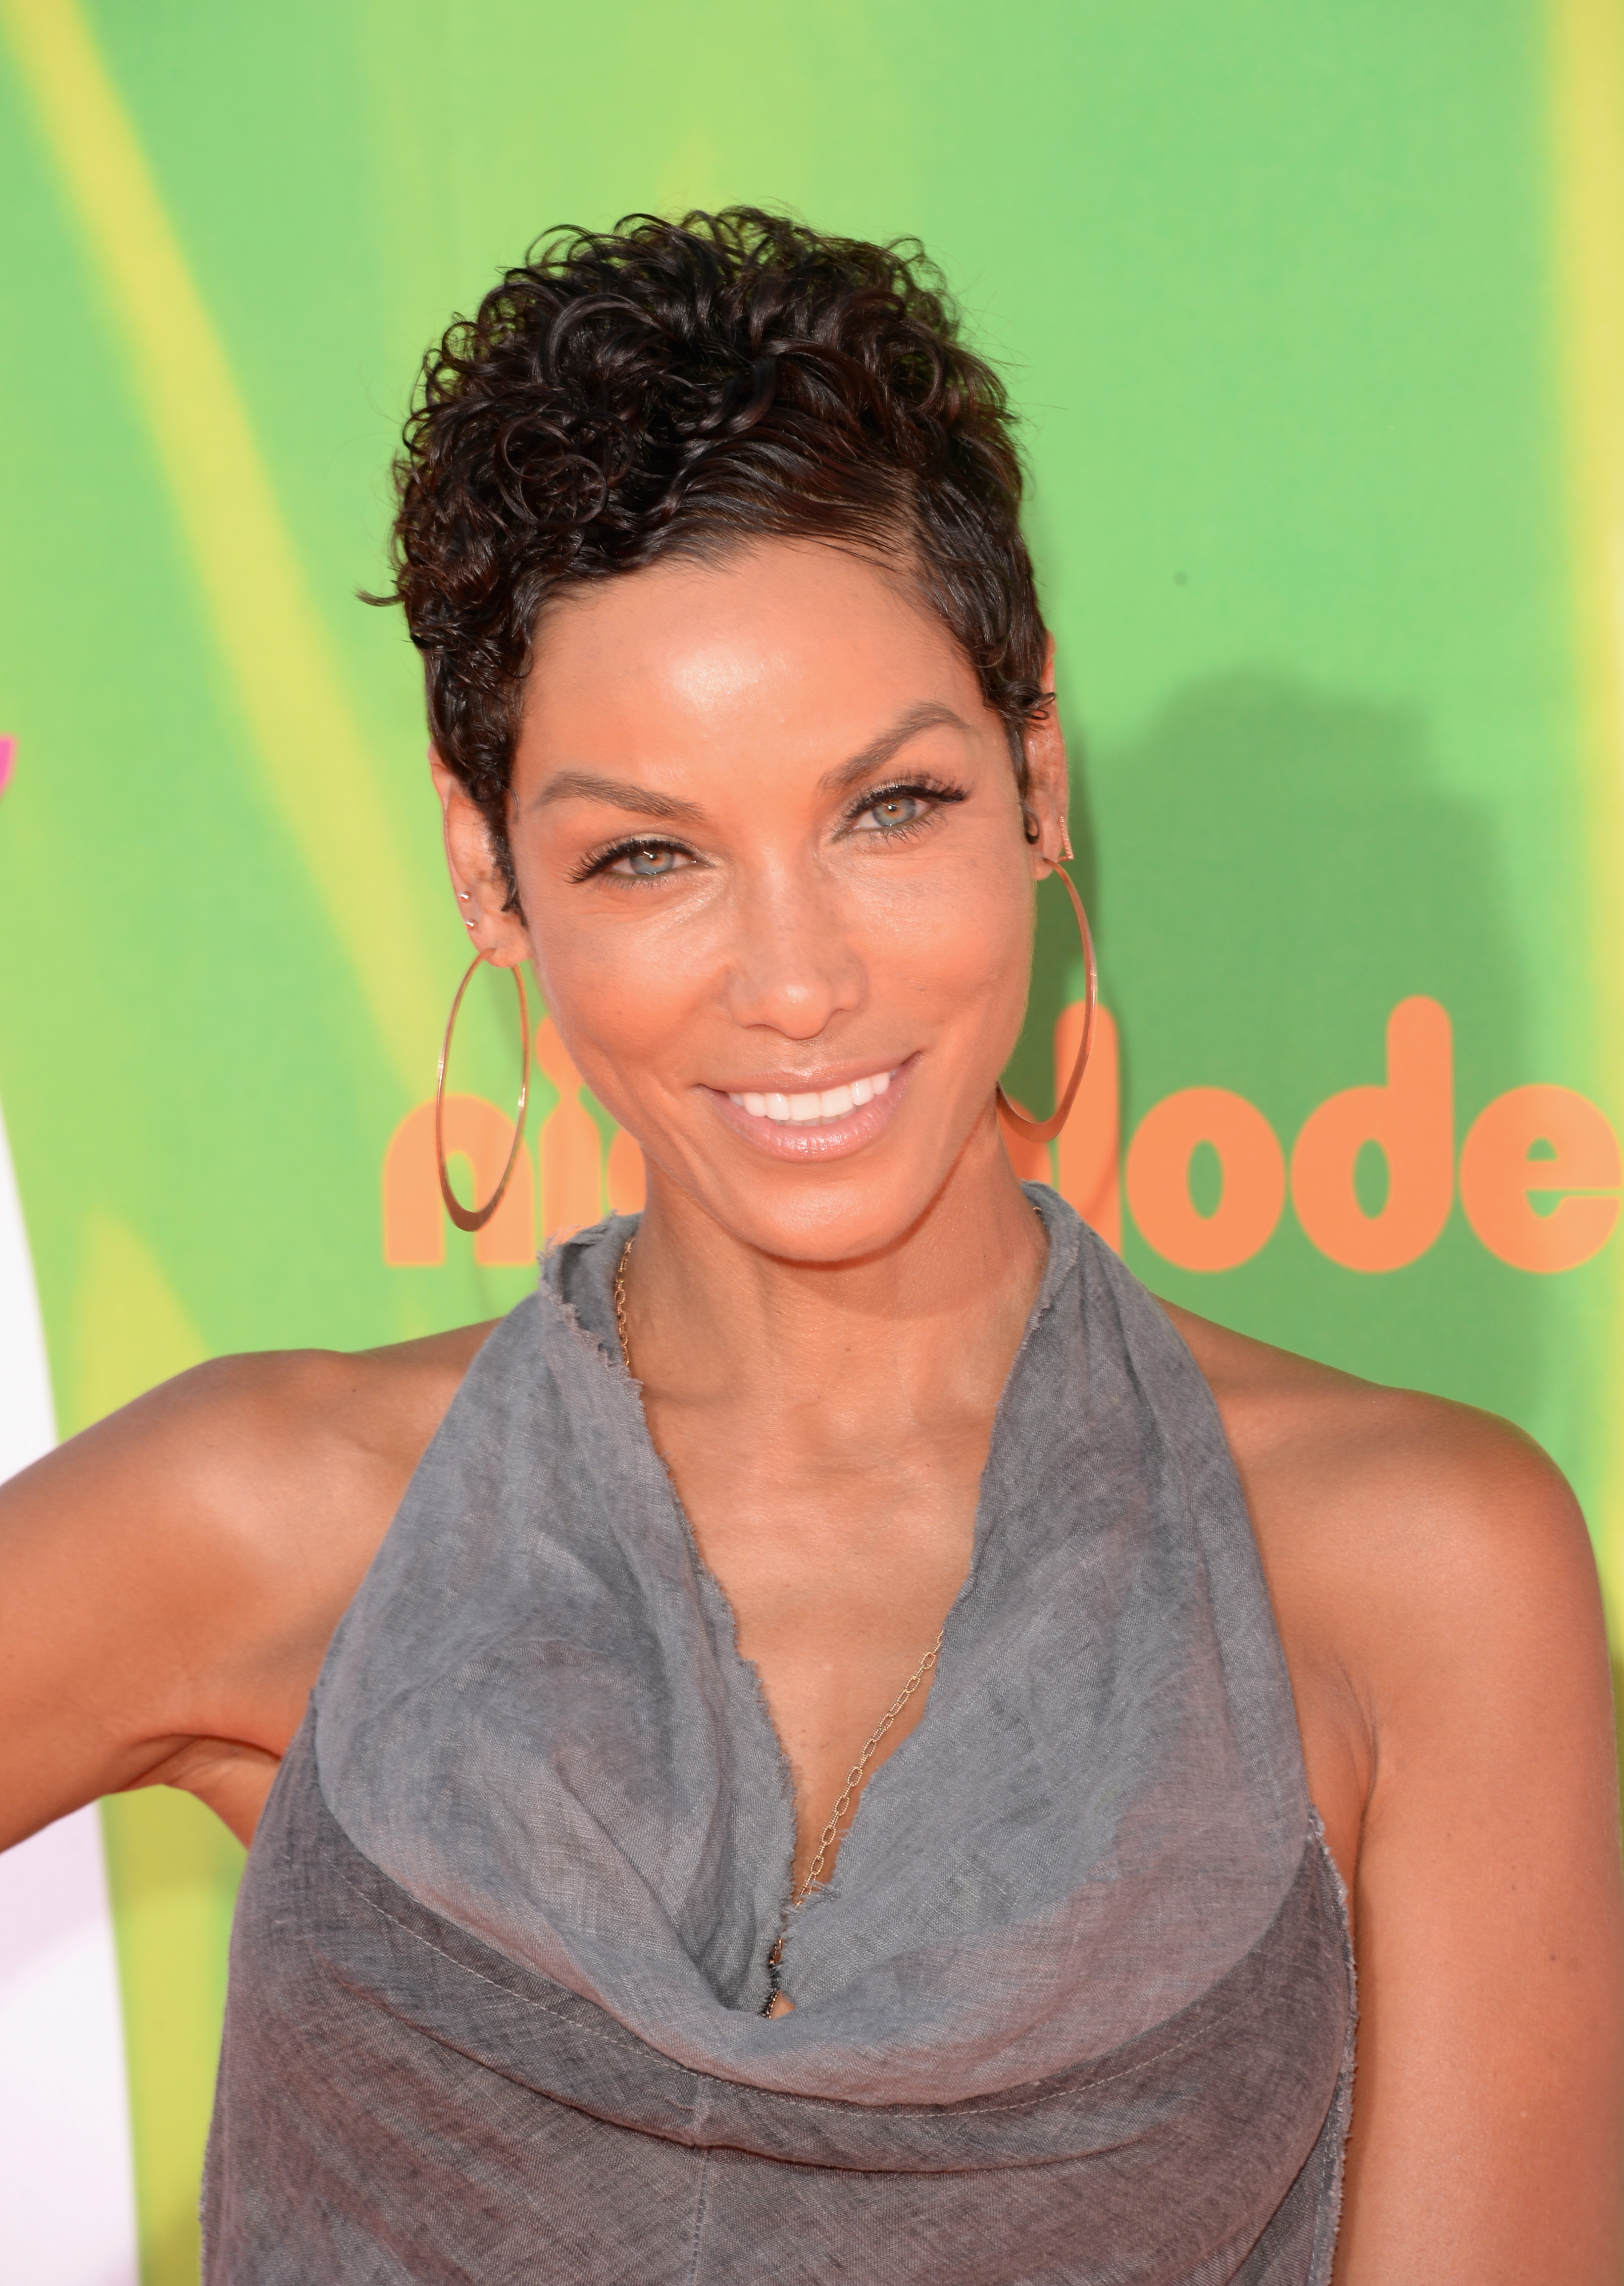 nicole mitchell murphy imagesnicole mitchell murphy instagram, nicole mitchell murphy wiki, nicole mitchell murphy, nicole mitchell murphy and eddie, nicole mitchell murphy net worth, nicole mitchell murphy and michael strahan, nicole mitchell murphy wikipedia, nicole mitchell murphy bio, nicole mitchell murphy pictures, nicole mitchell murphy husband, nicole mitchell murphy parents, nicole mitchell murphy young, nicole mitchell murphy daughter, nicole mitchell murphy age, nicole mitchell murphy boyfriend, nicole mitchell murphy images, nicole mitchell murphy feet, nicole mitchell murphy dating, nicole mitchell murphy body, nicole mitchell murphy and nick cannon